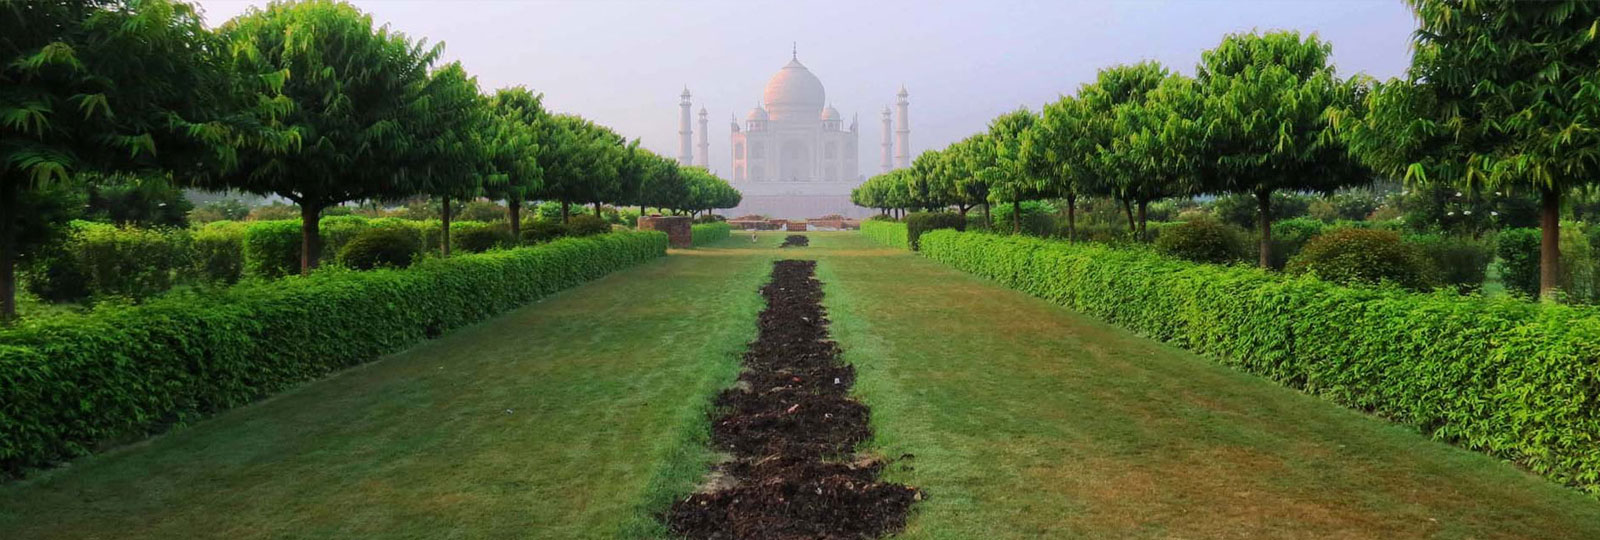 Same Day Tours to Taj Mahal